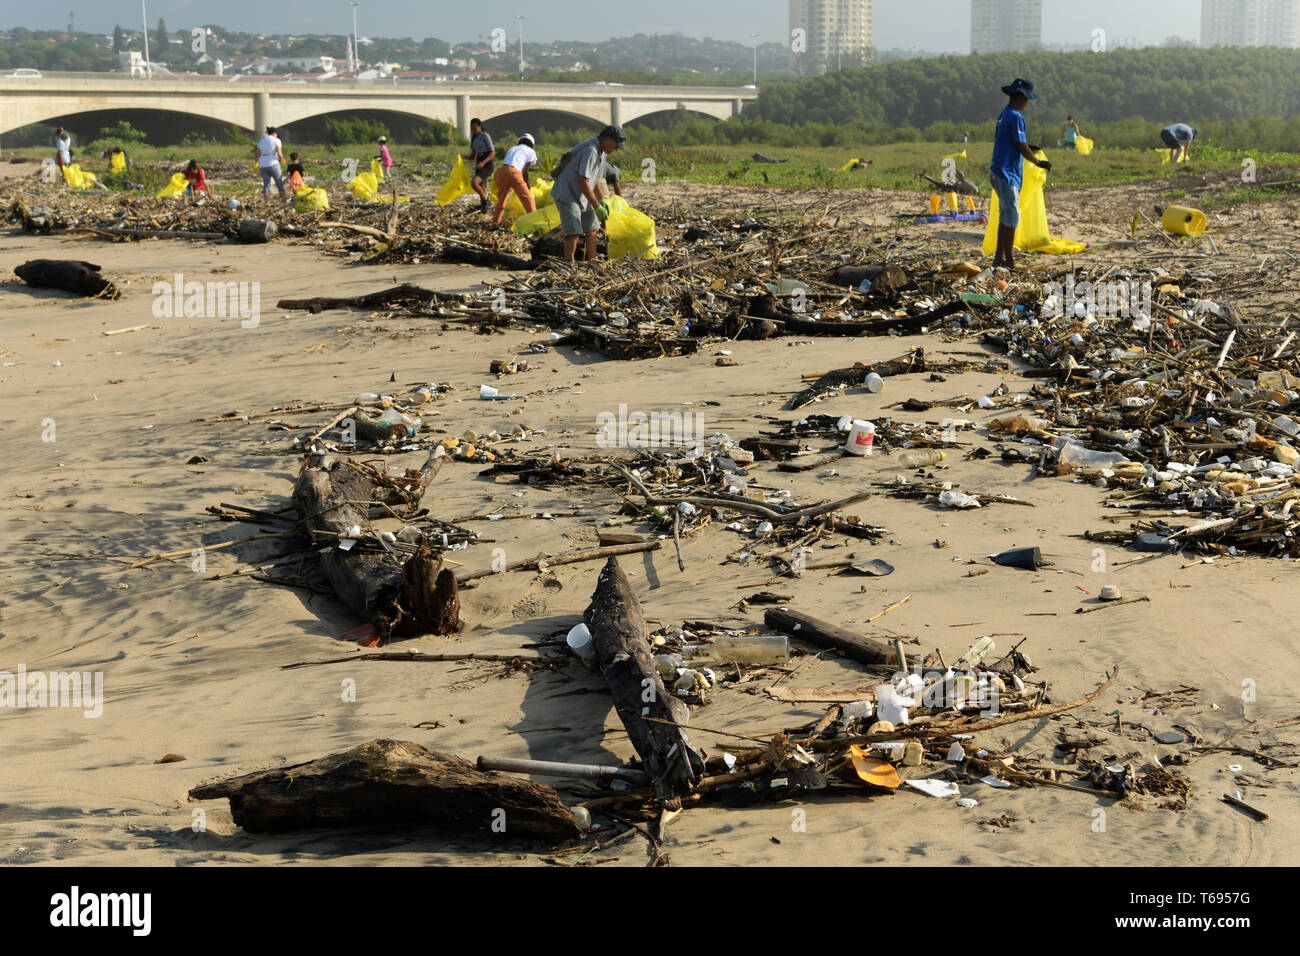 Durban, KwaZulu-Natal, South Africa, plastic pollution, community volunteers collecting waste packaging from beach in Umgeni river estuary, people - Stock Image